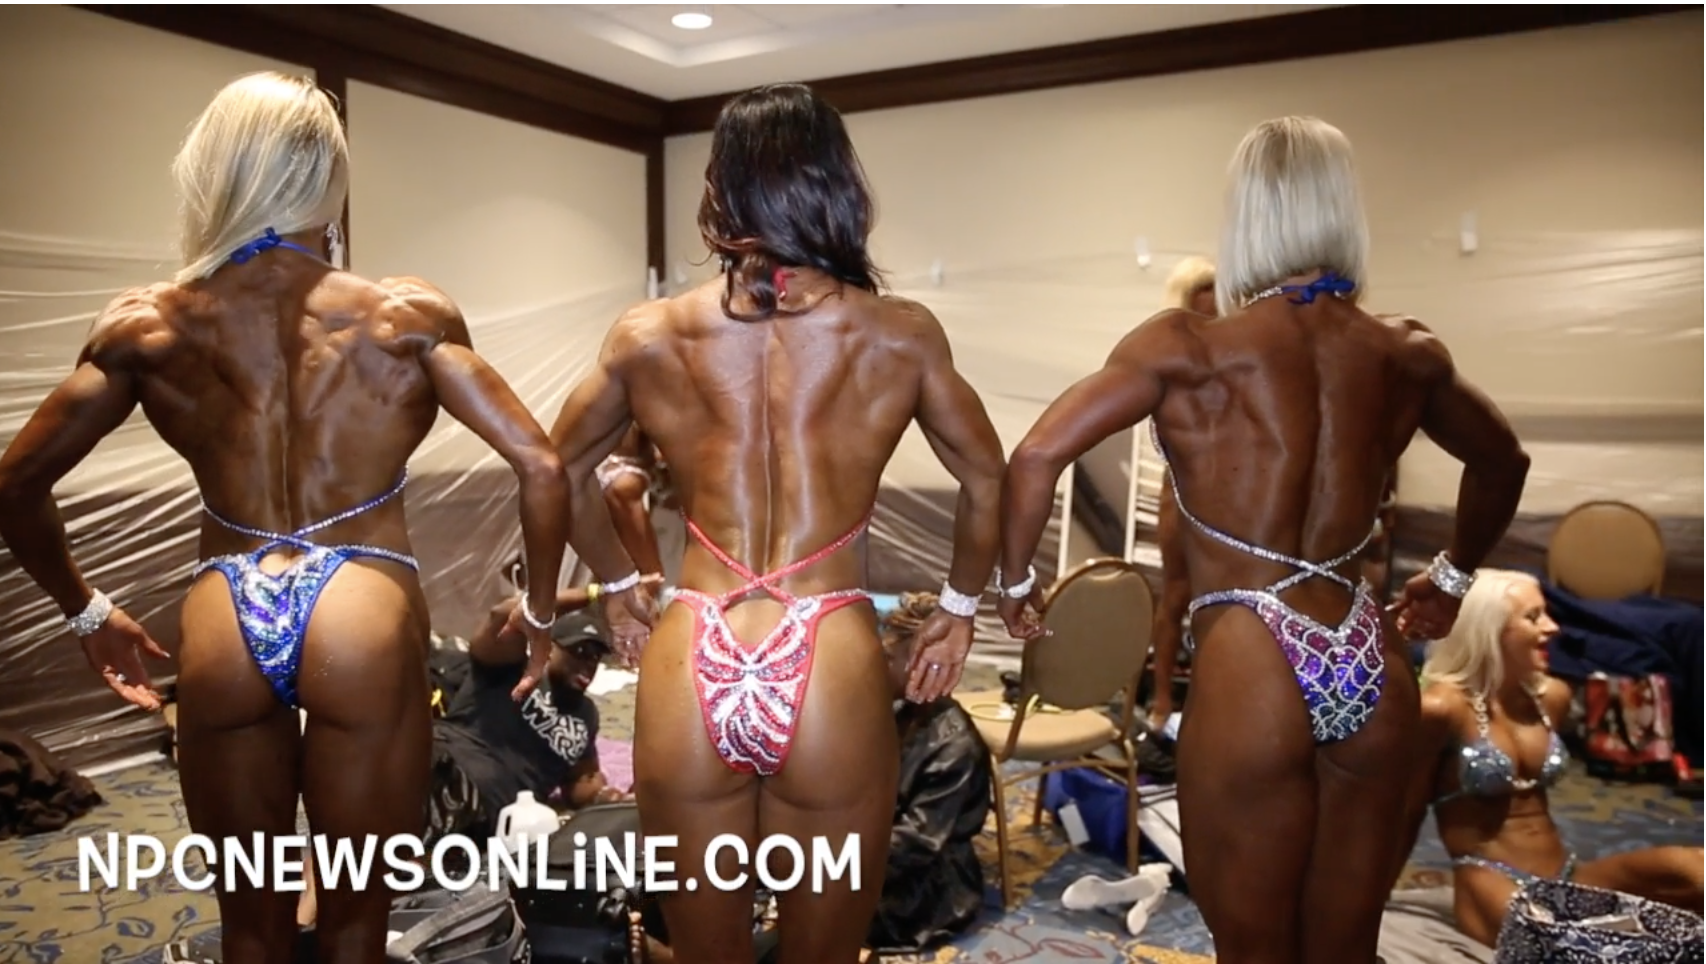 2017 IFBB North American Open Women's Figure Backstage Video